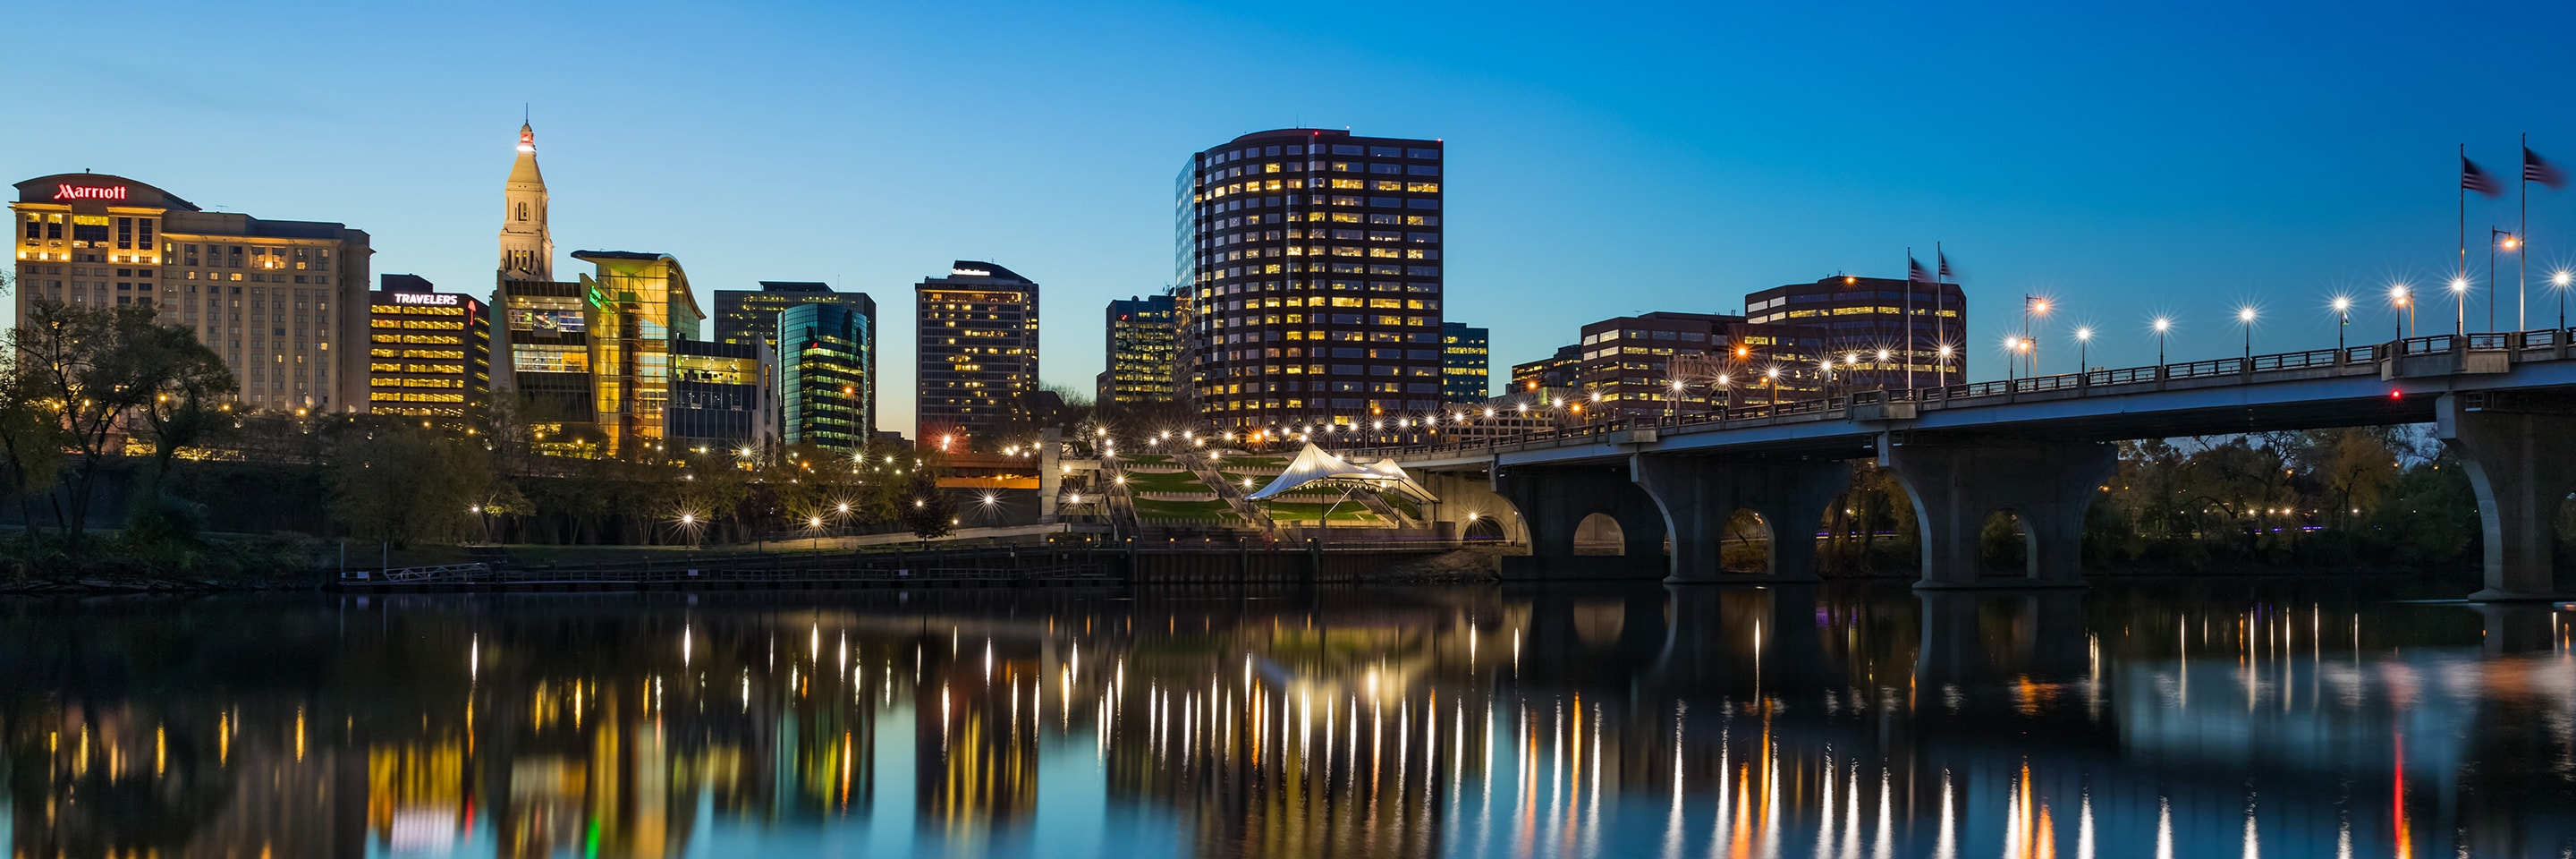 Hotels in Hartford